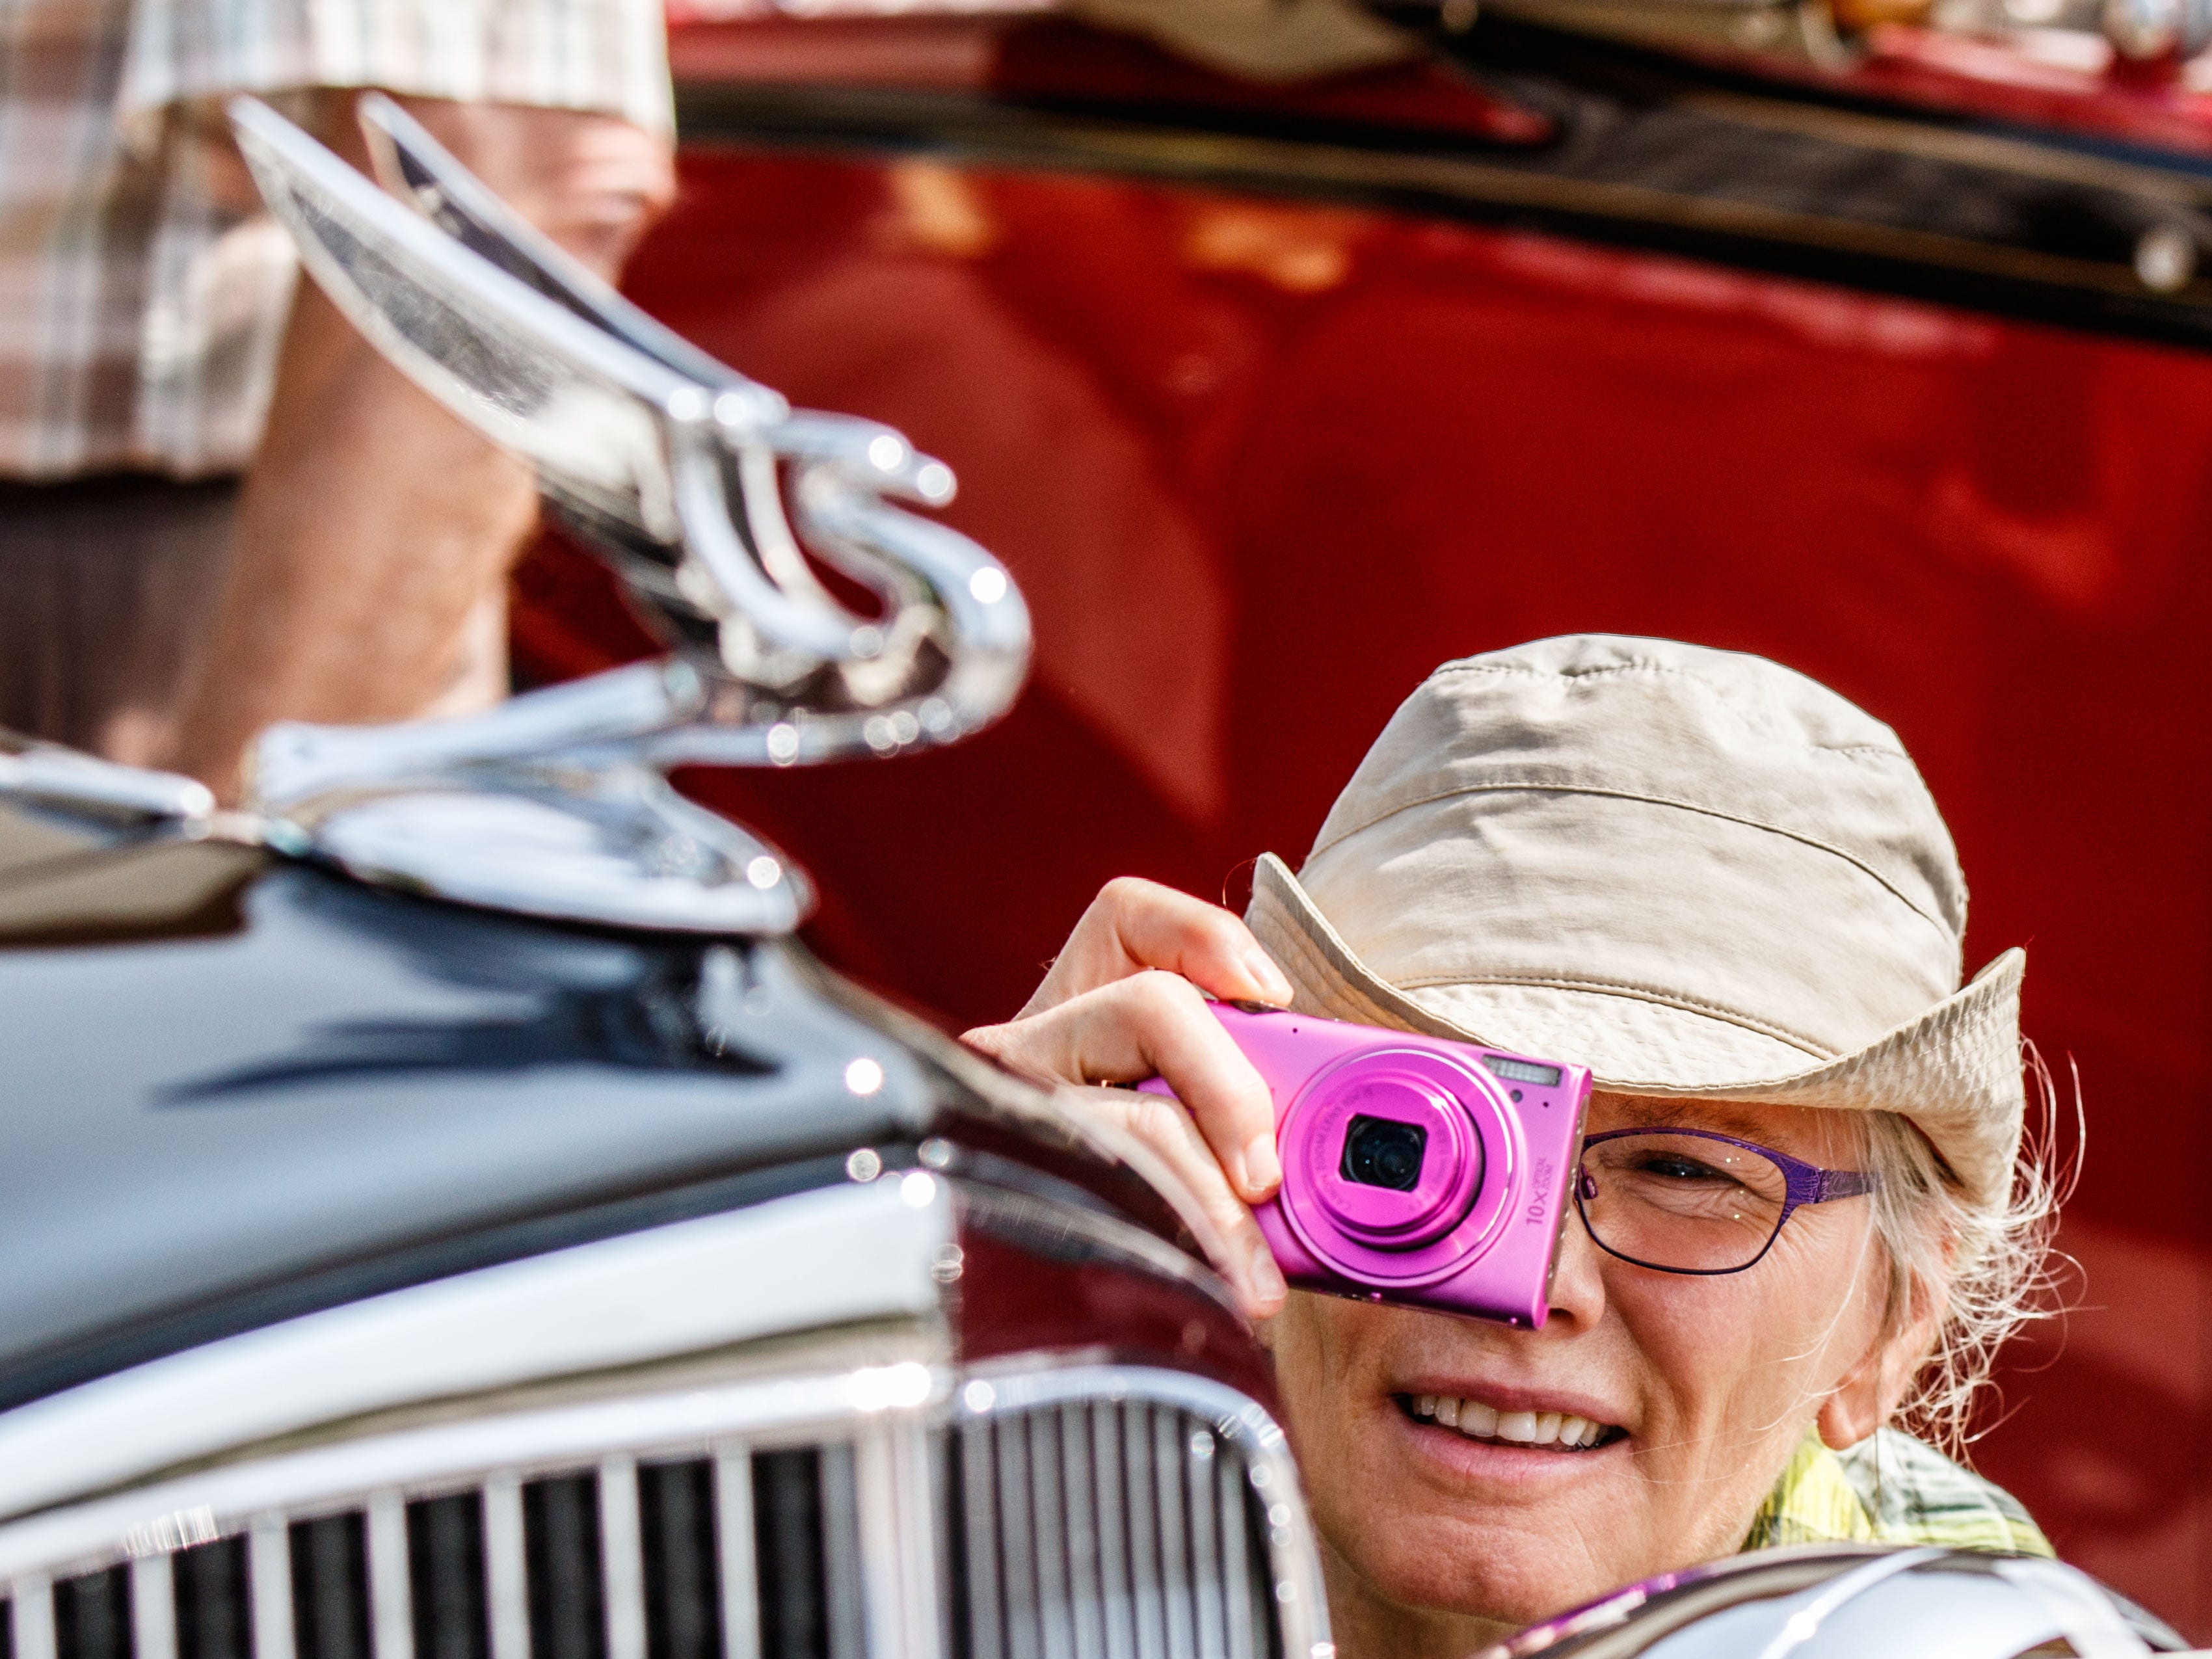 Deb Riggs of Hartland snaps a photo of the hood ornament on a restored 1934 Chevrolet Master Deluxe sedan during the 14th annual Pewaukee Antique & Classic Boat Show & Vintage Car Show on Saturday, August 18, 2018.